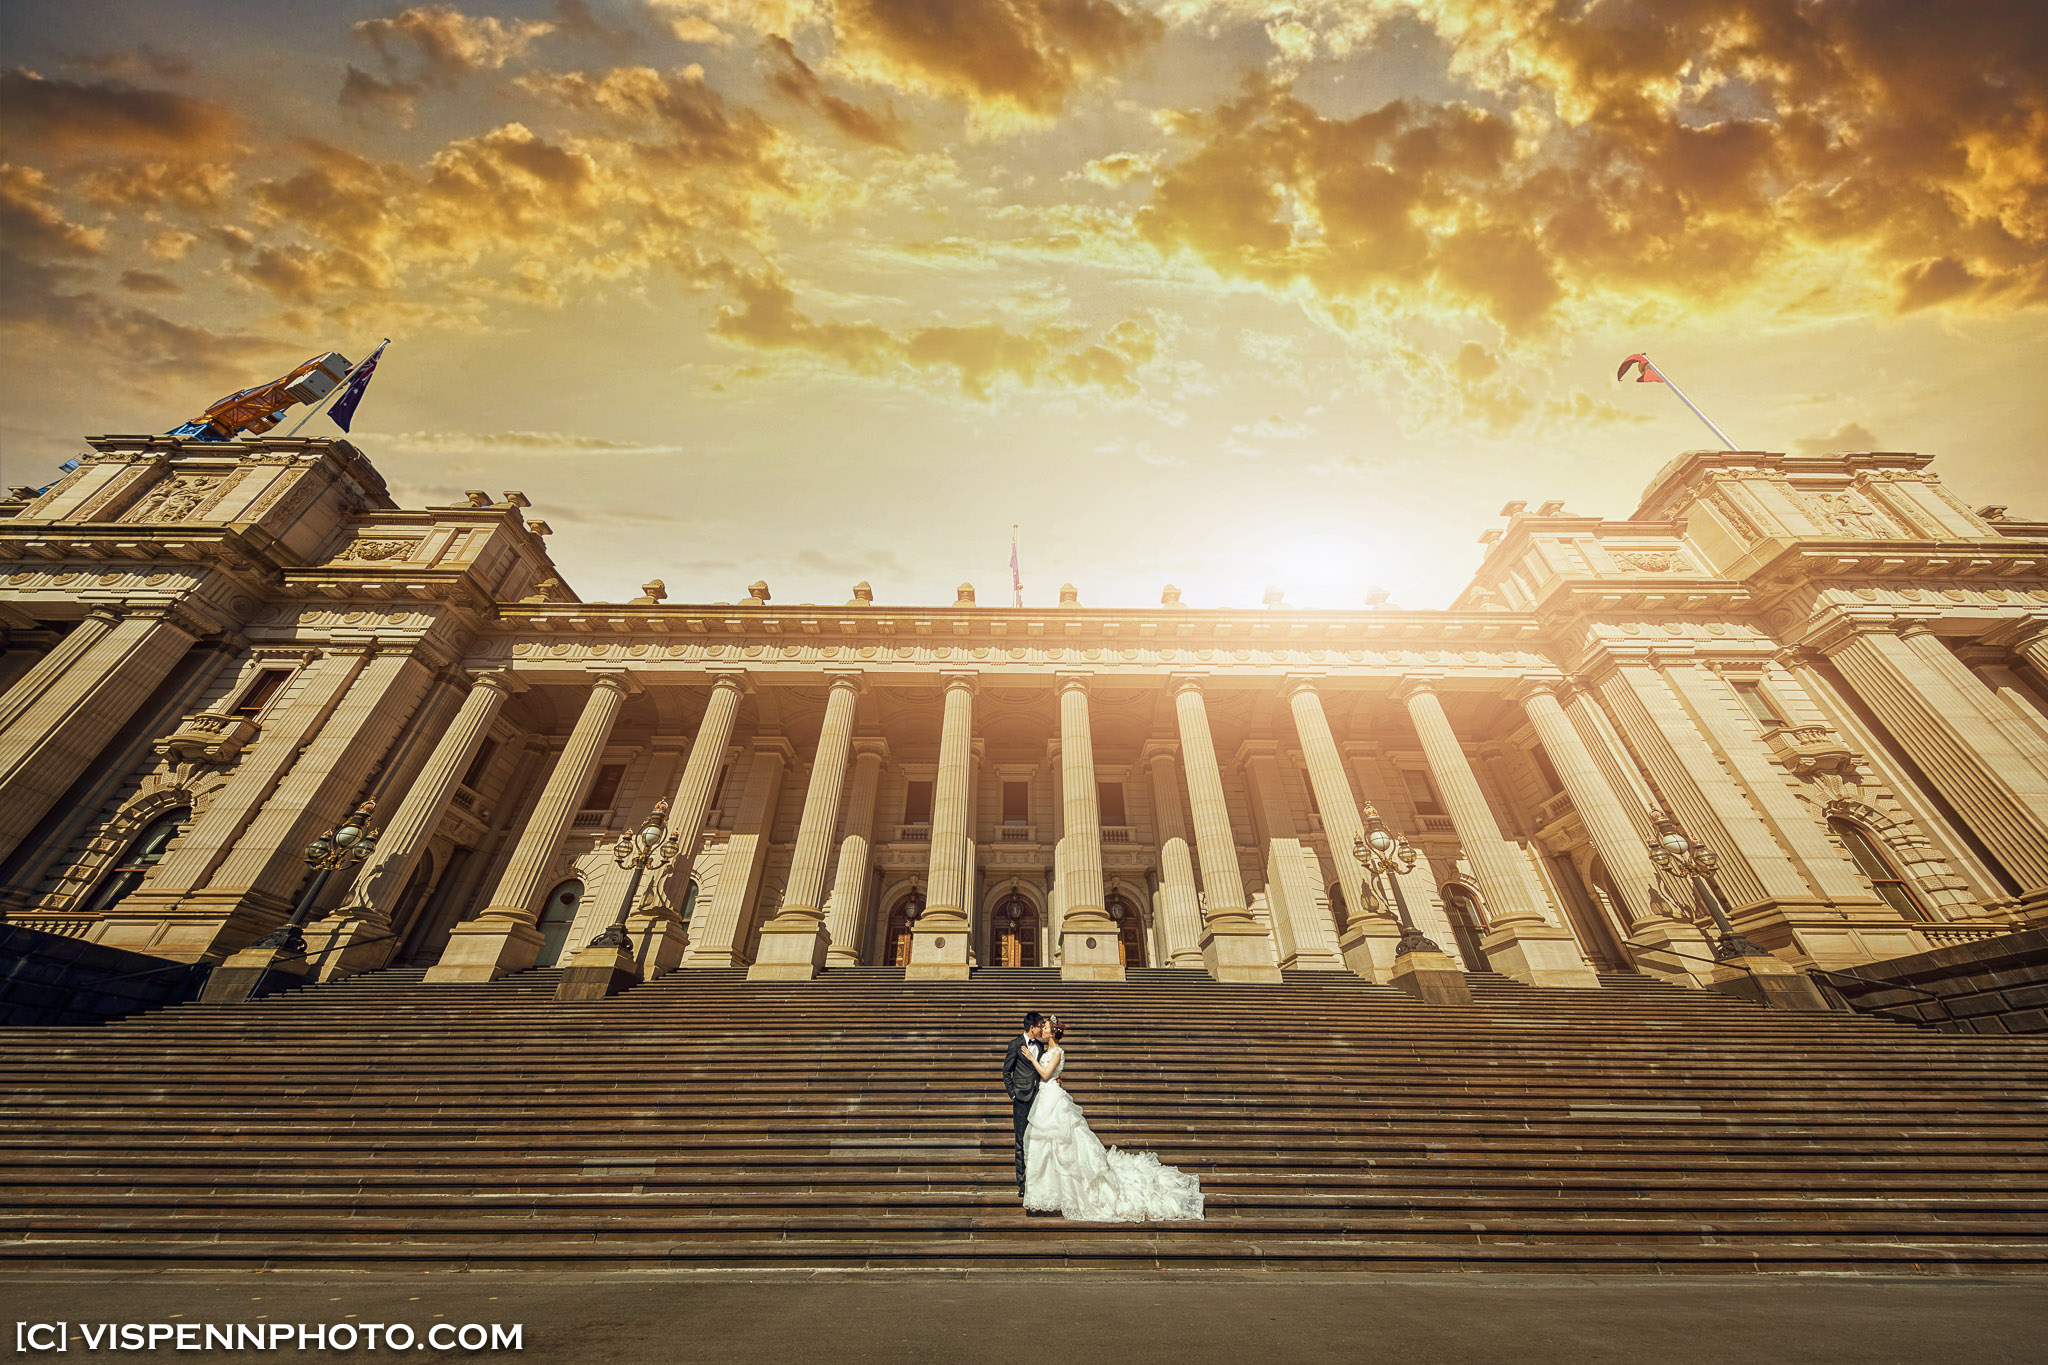 PRE WEDDING Photography Melbourne ZHPENN AllenWang 1655 1